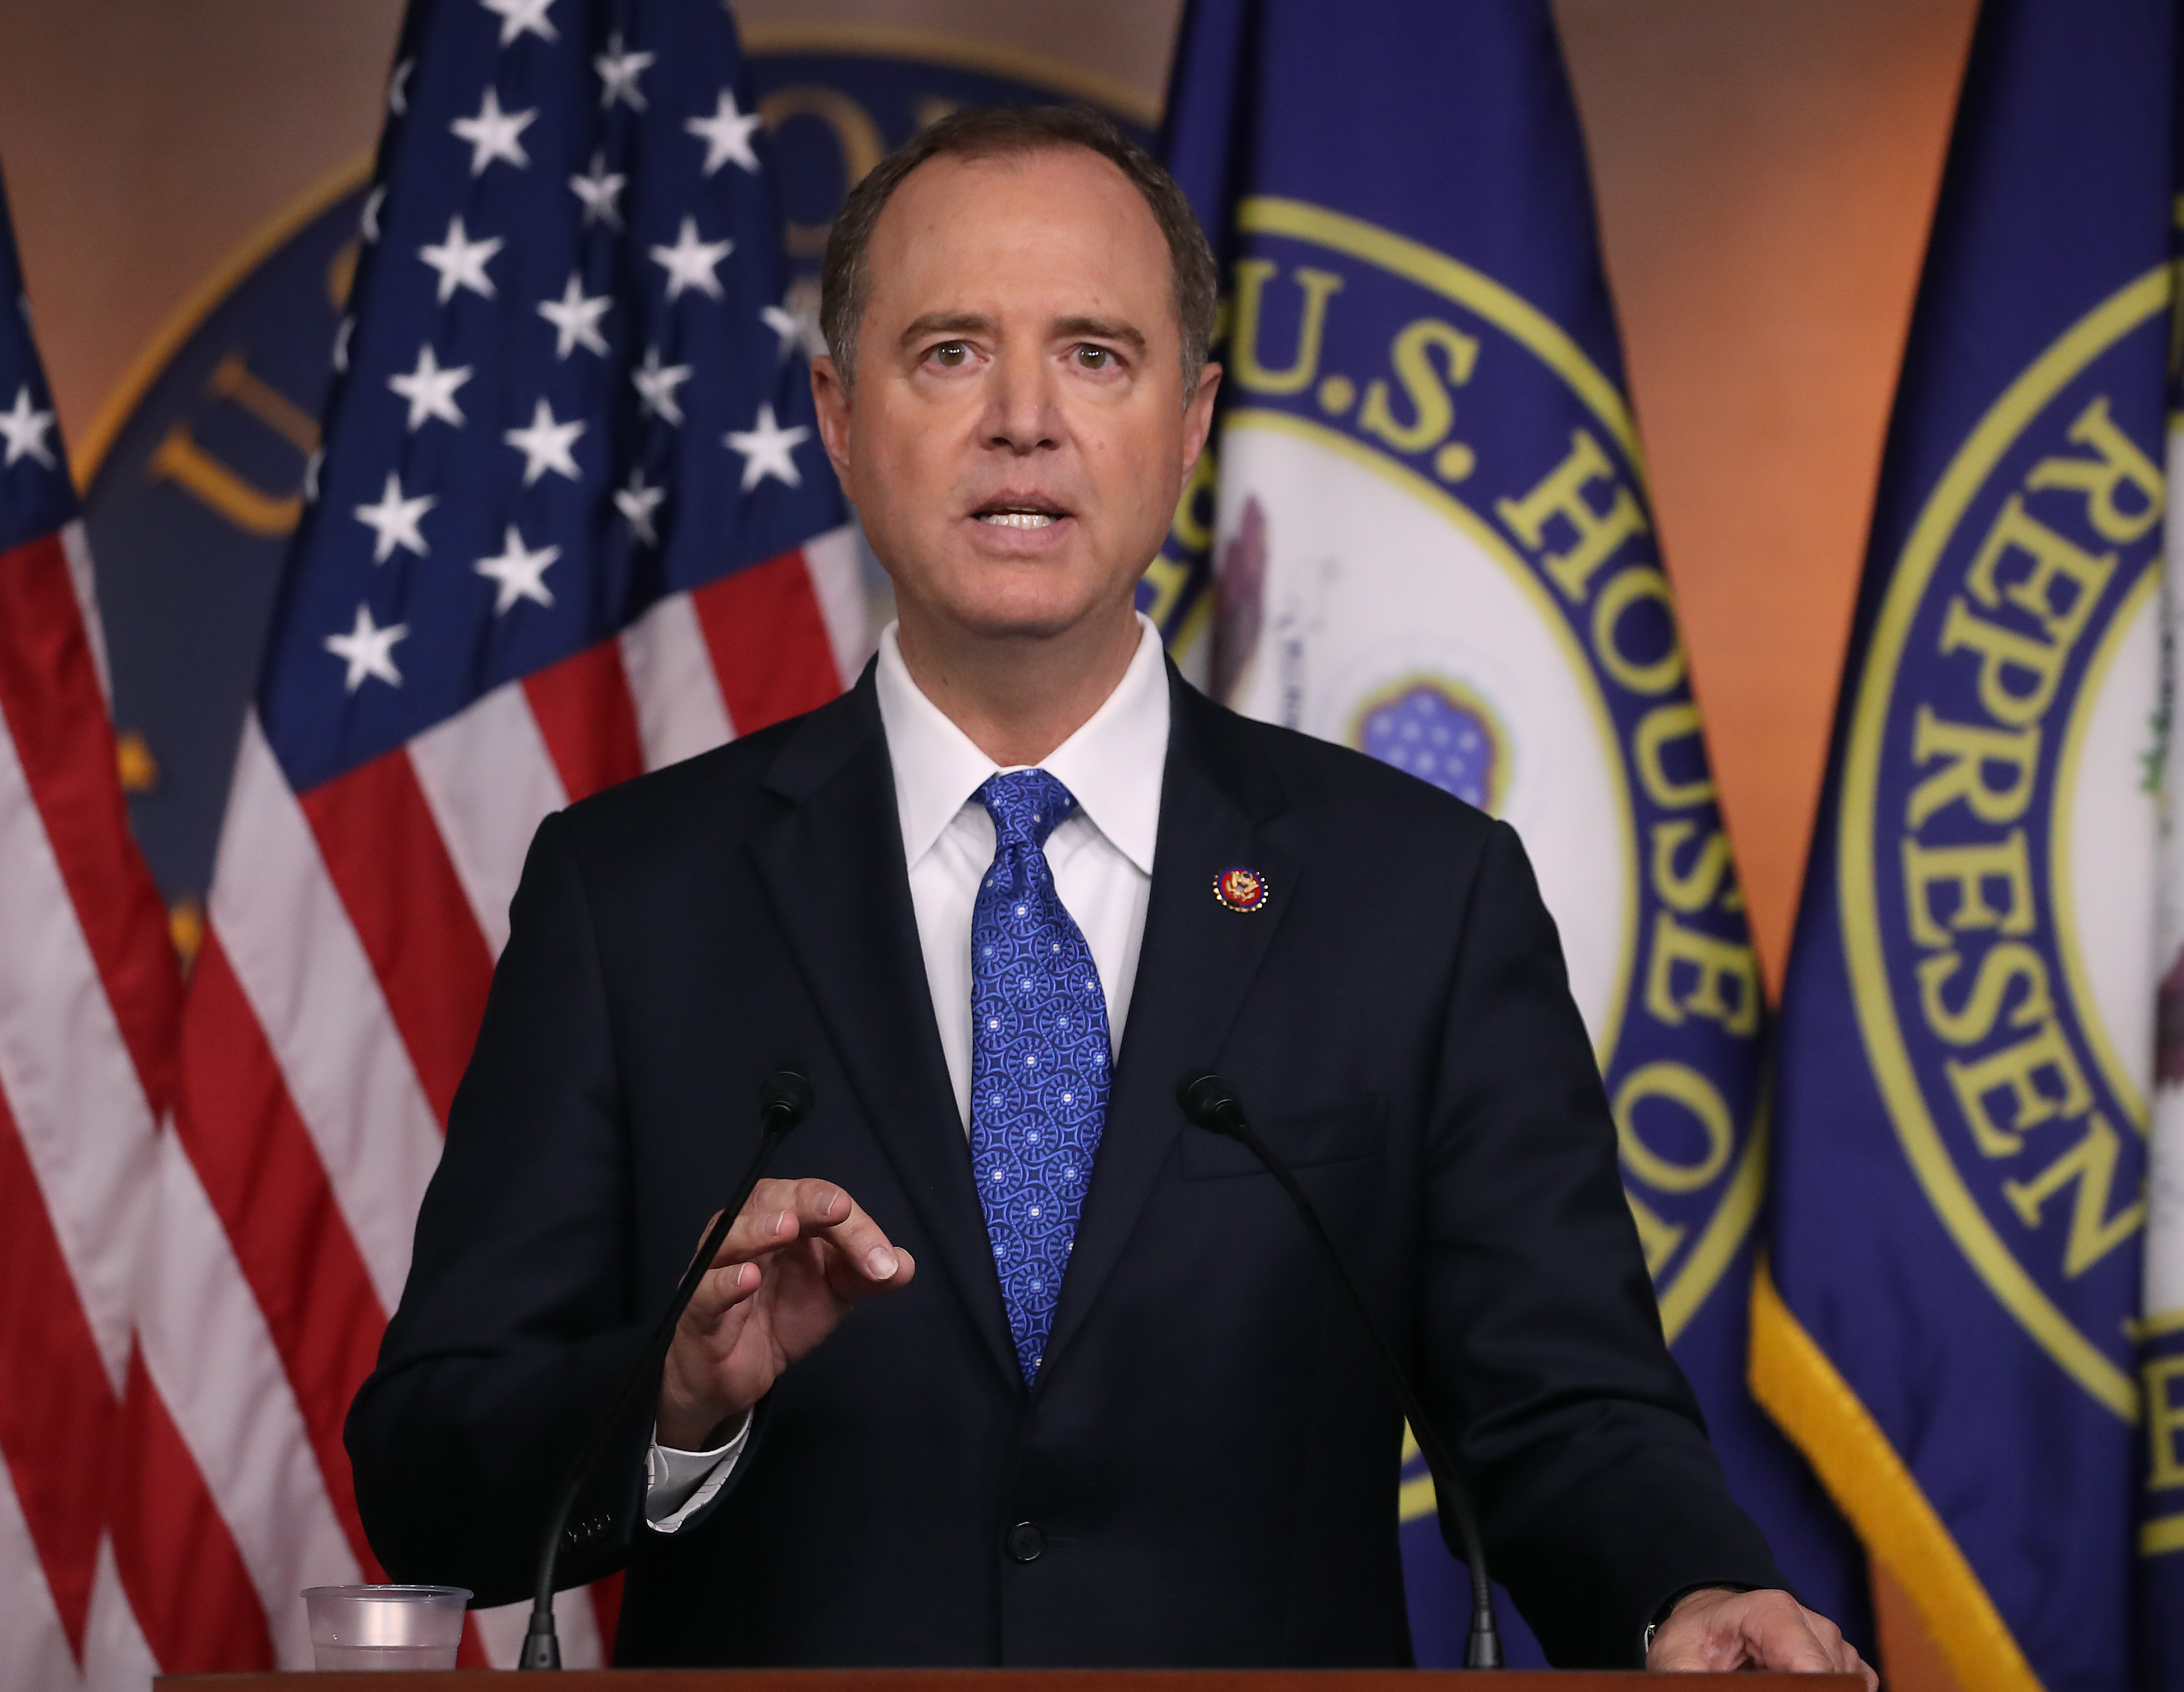 House Intelligence Chairman Rep. Adam Schiff (D-CA) speaks to the media one day after House Speaker Nancy Pelosi (D-CA) announced that Democrats will start an impeachment injury of U.S. President Donald Trump, on September 25, 2019 in Washington, DC. (Mark Wilson/Getty Images)